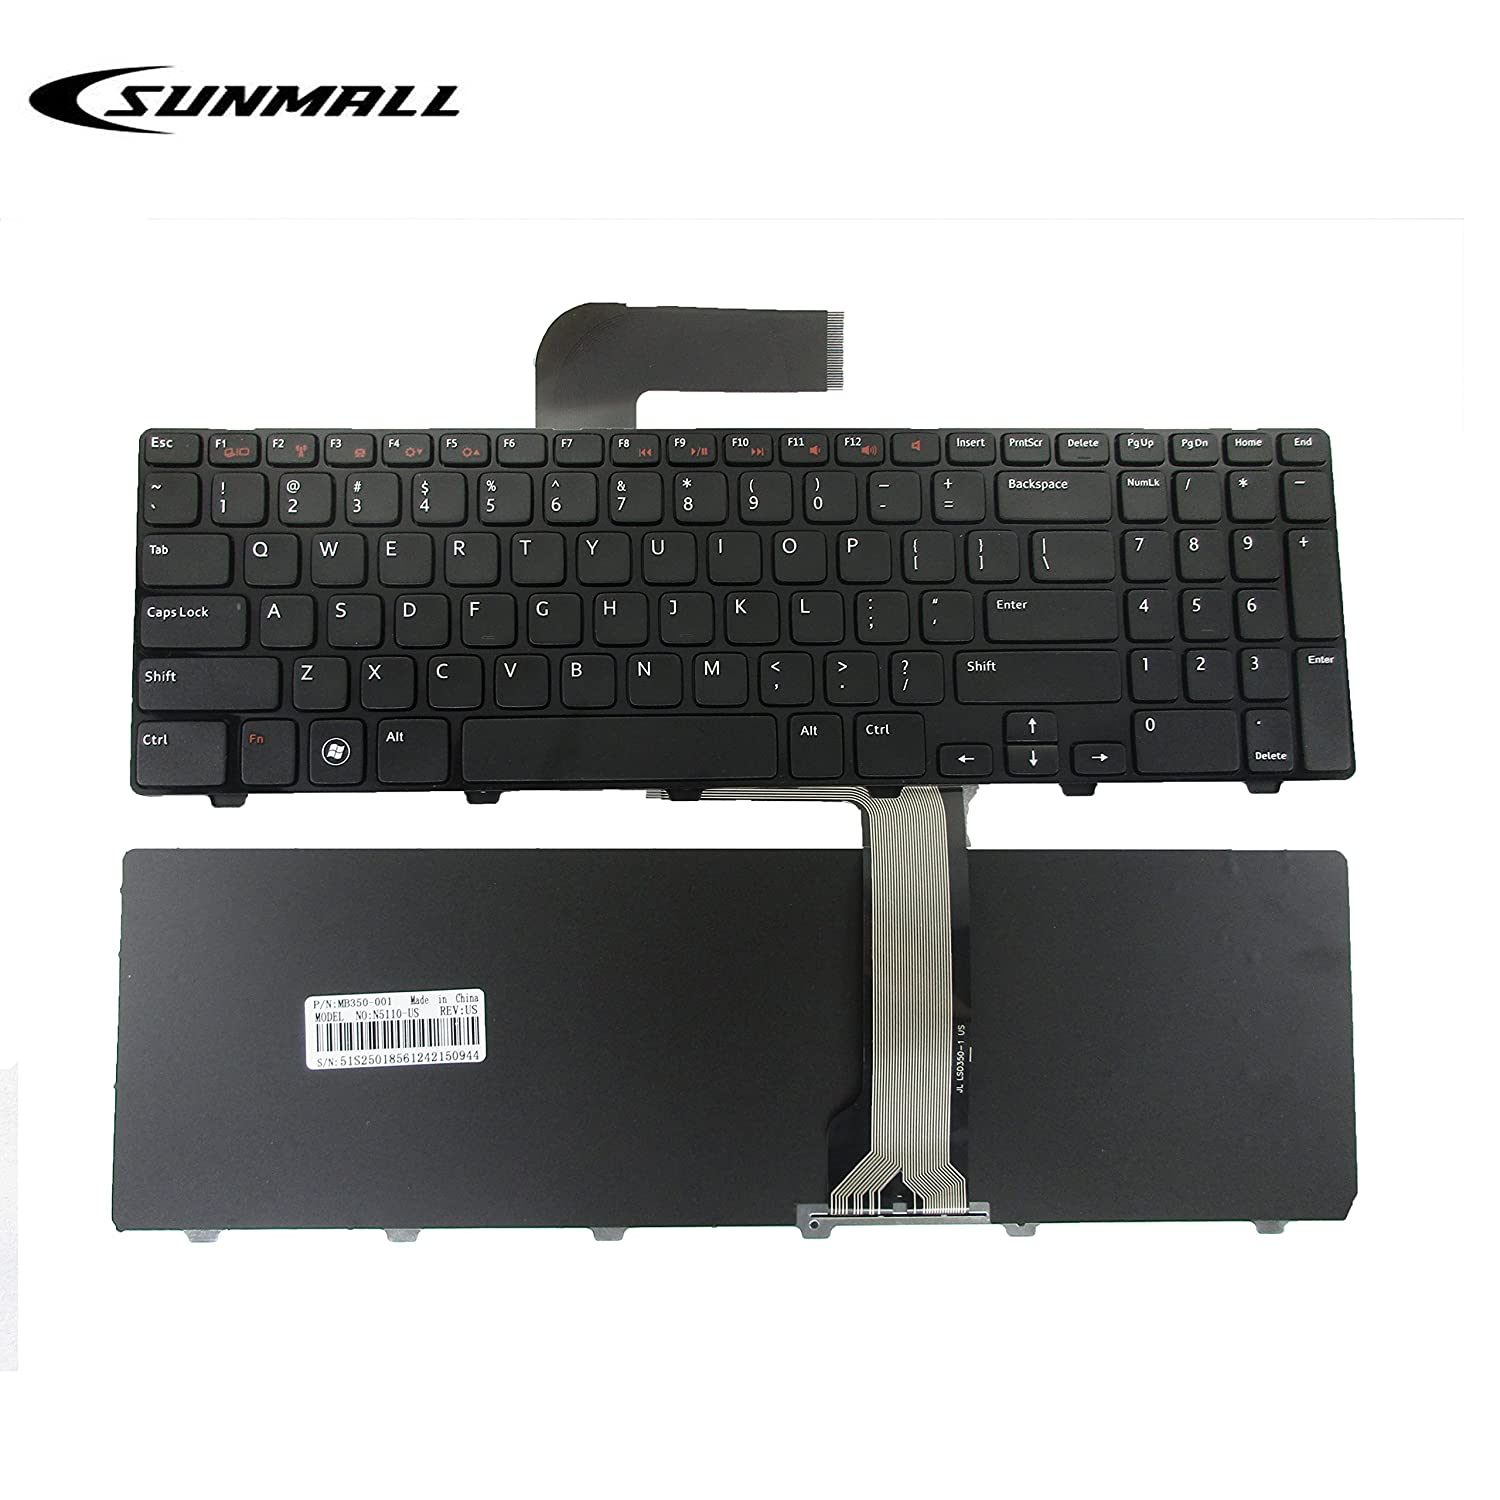 N5110 keyboard for DELL Inspiron, SUNMALL Replacement Laptop Keyboard with Frame for DELL Inspiron 15R N5110 M501Z M511R Ins15RD-2528 2728 2428 (6 Months Warranty) Keyboardseller N5110 M5010